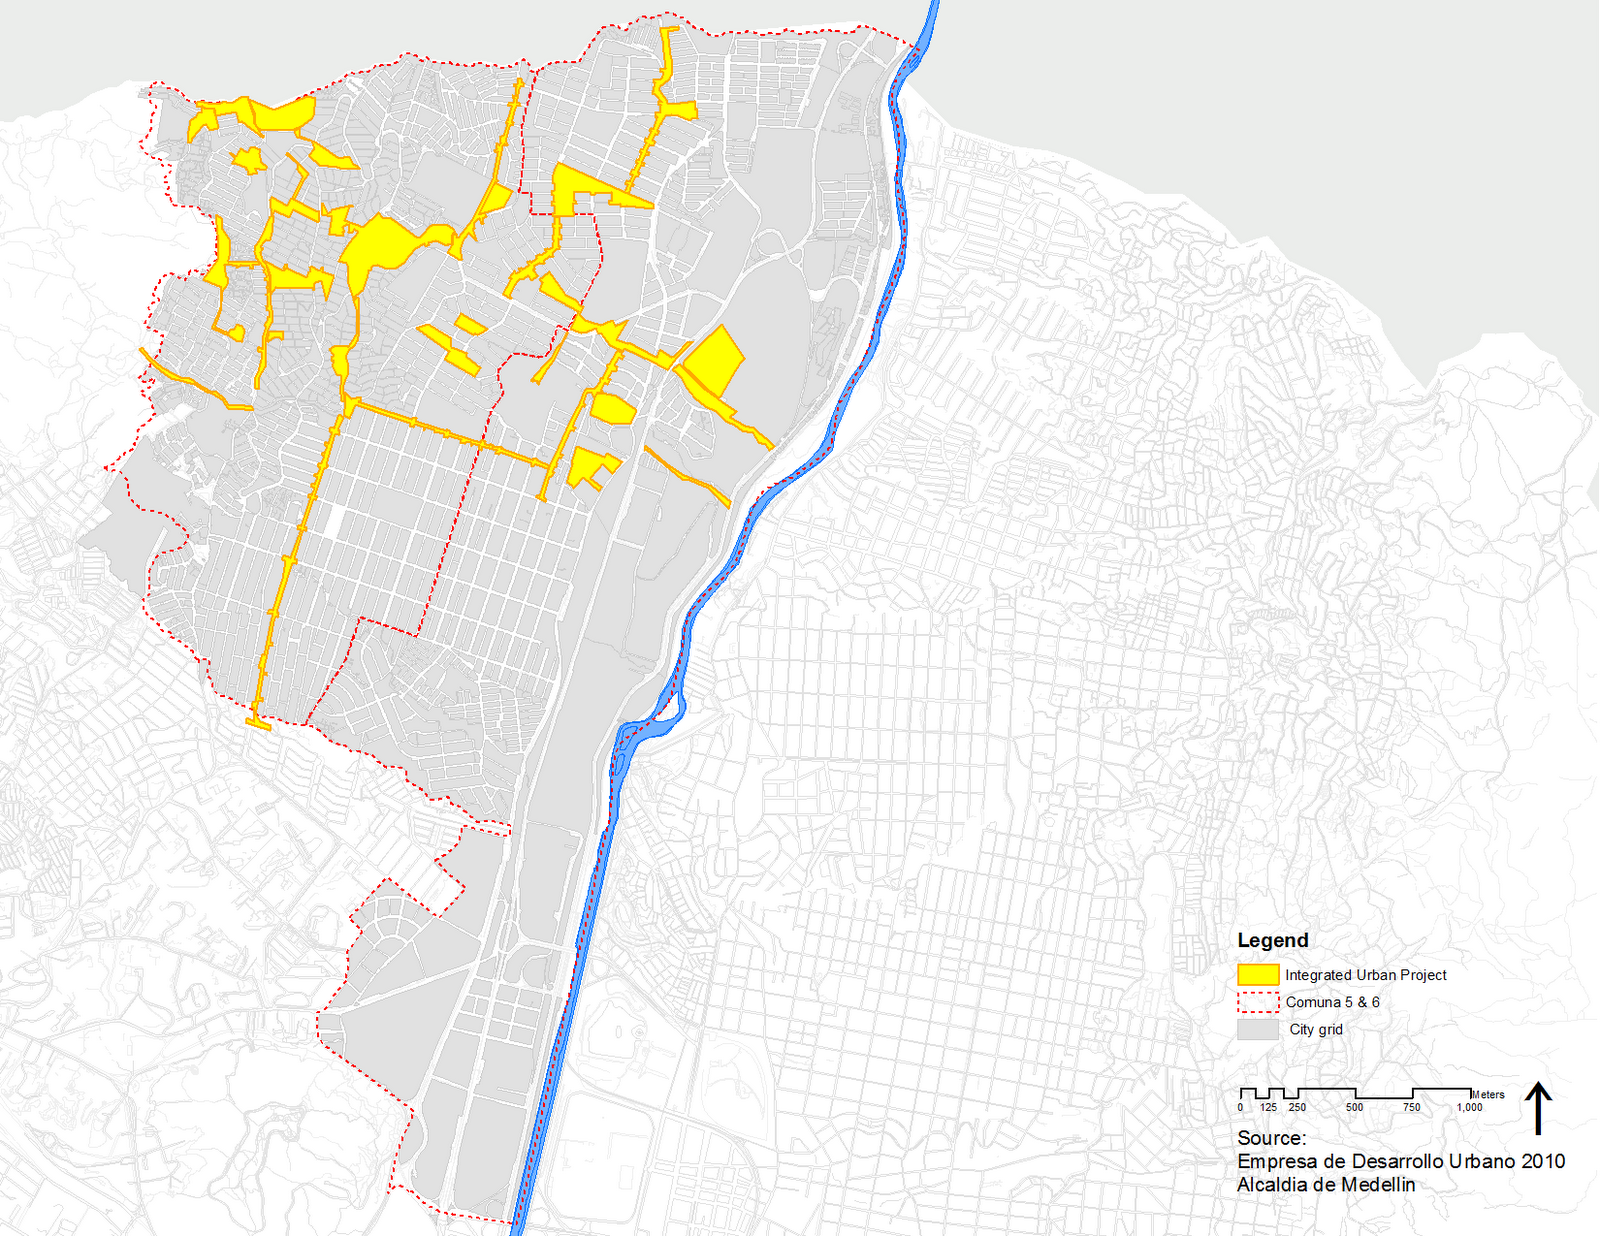 figure 7 integrated urban project iup noroccidental in yellow all areas to be developed as part of the urban upgrading program